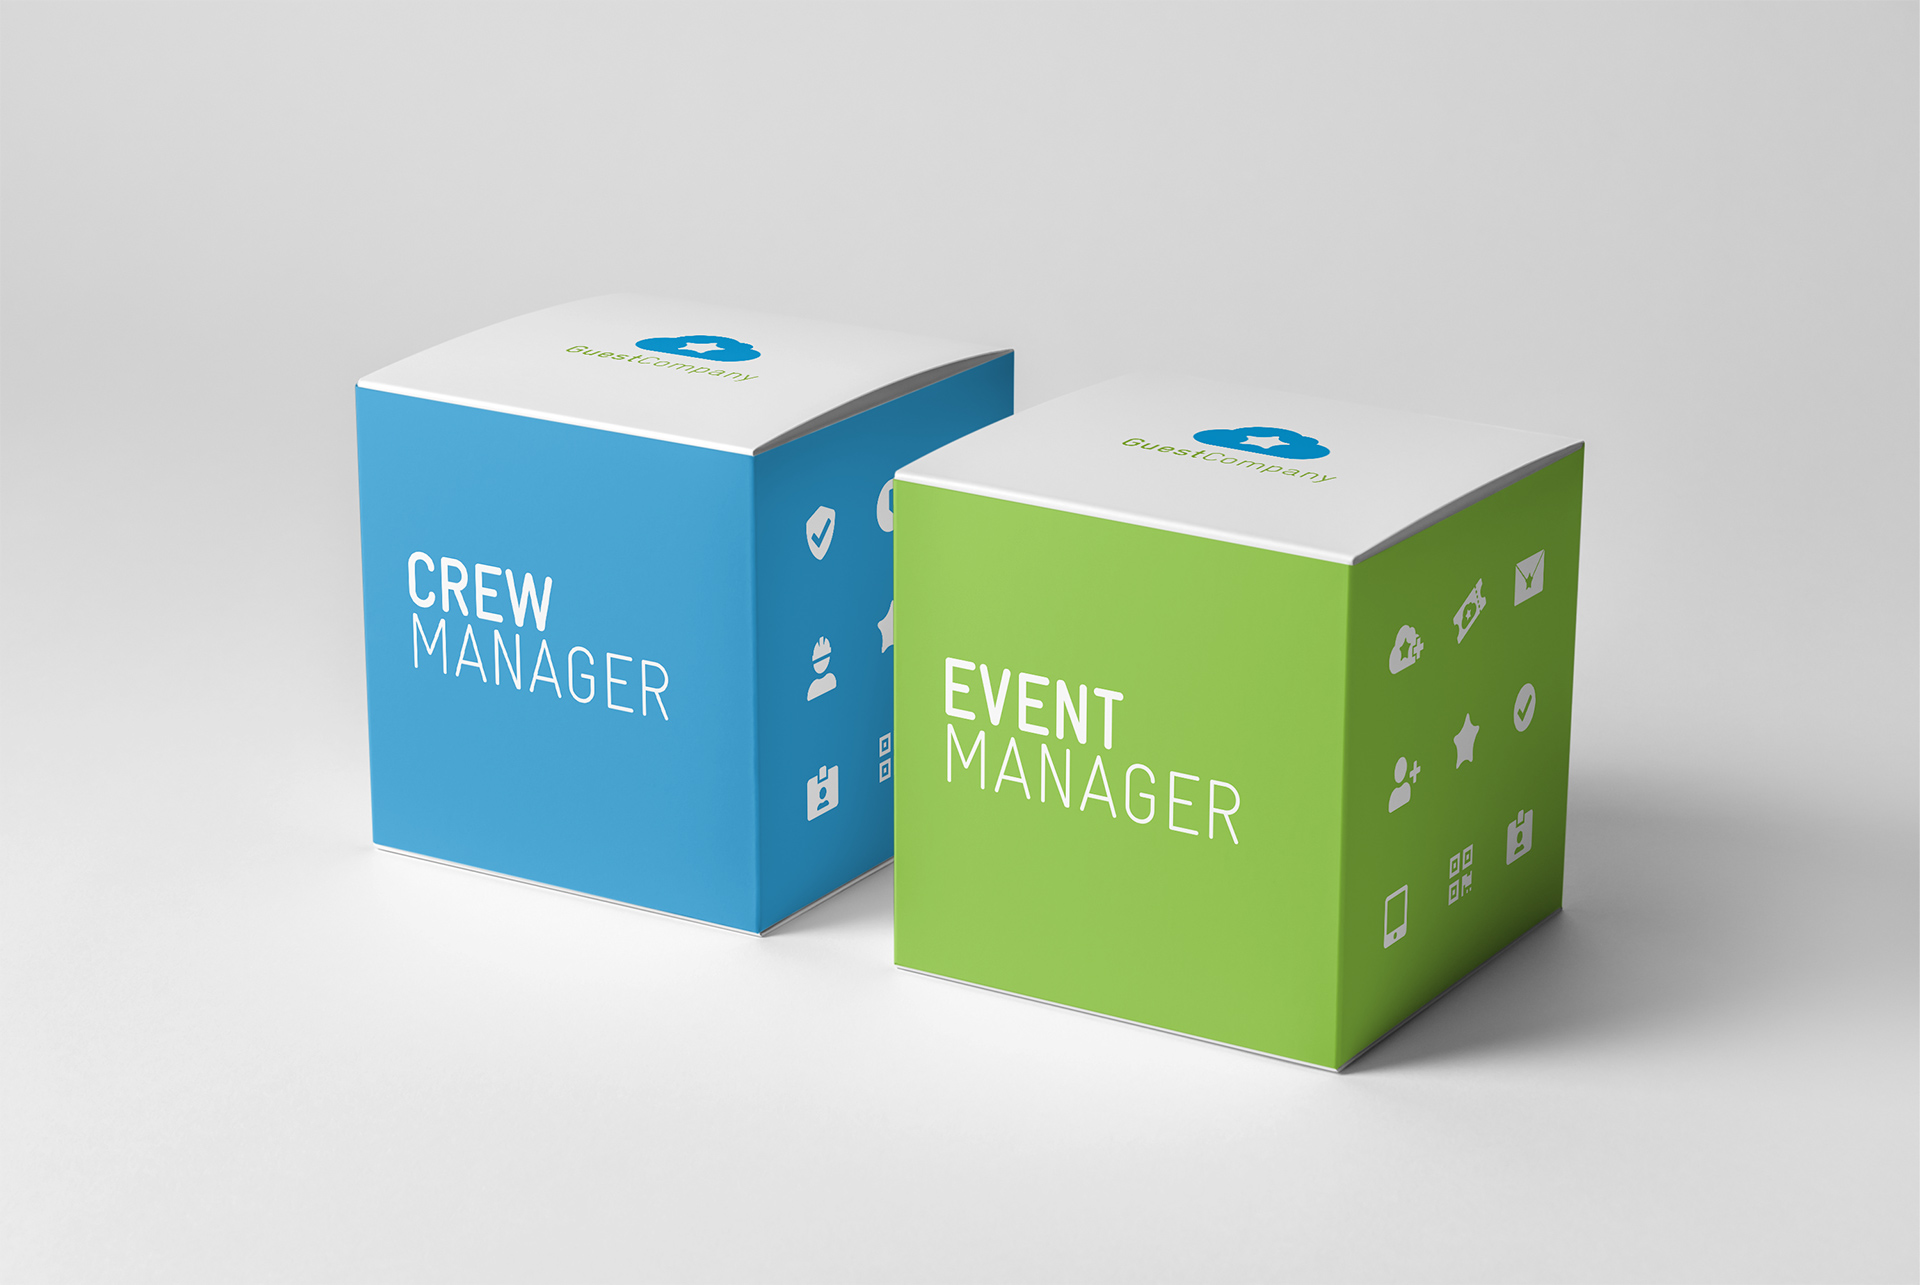 CrewManager und EventManager